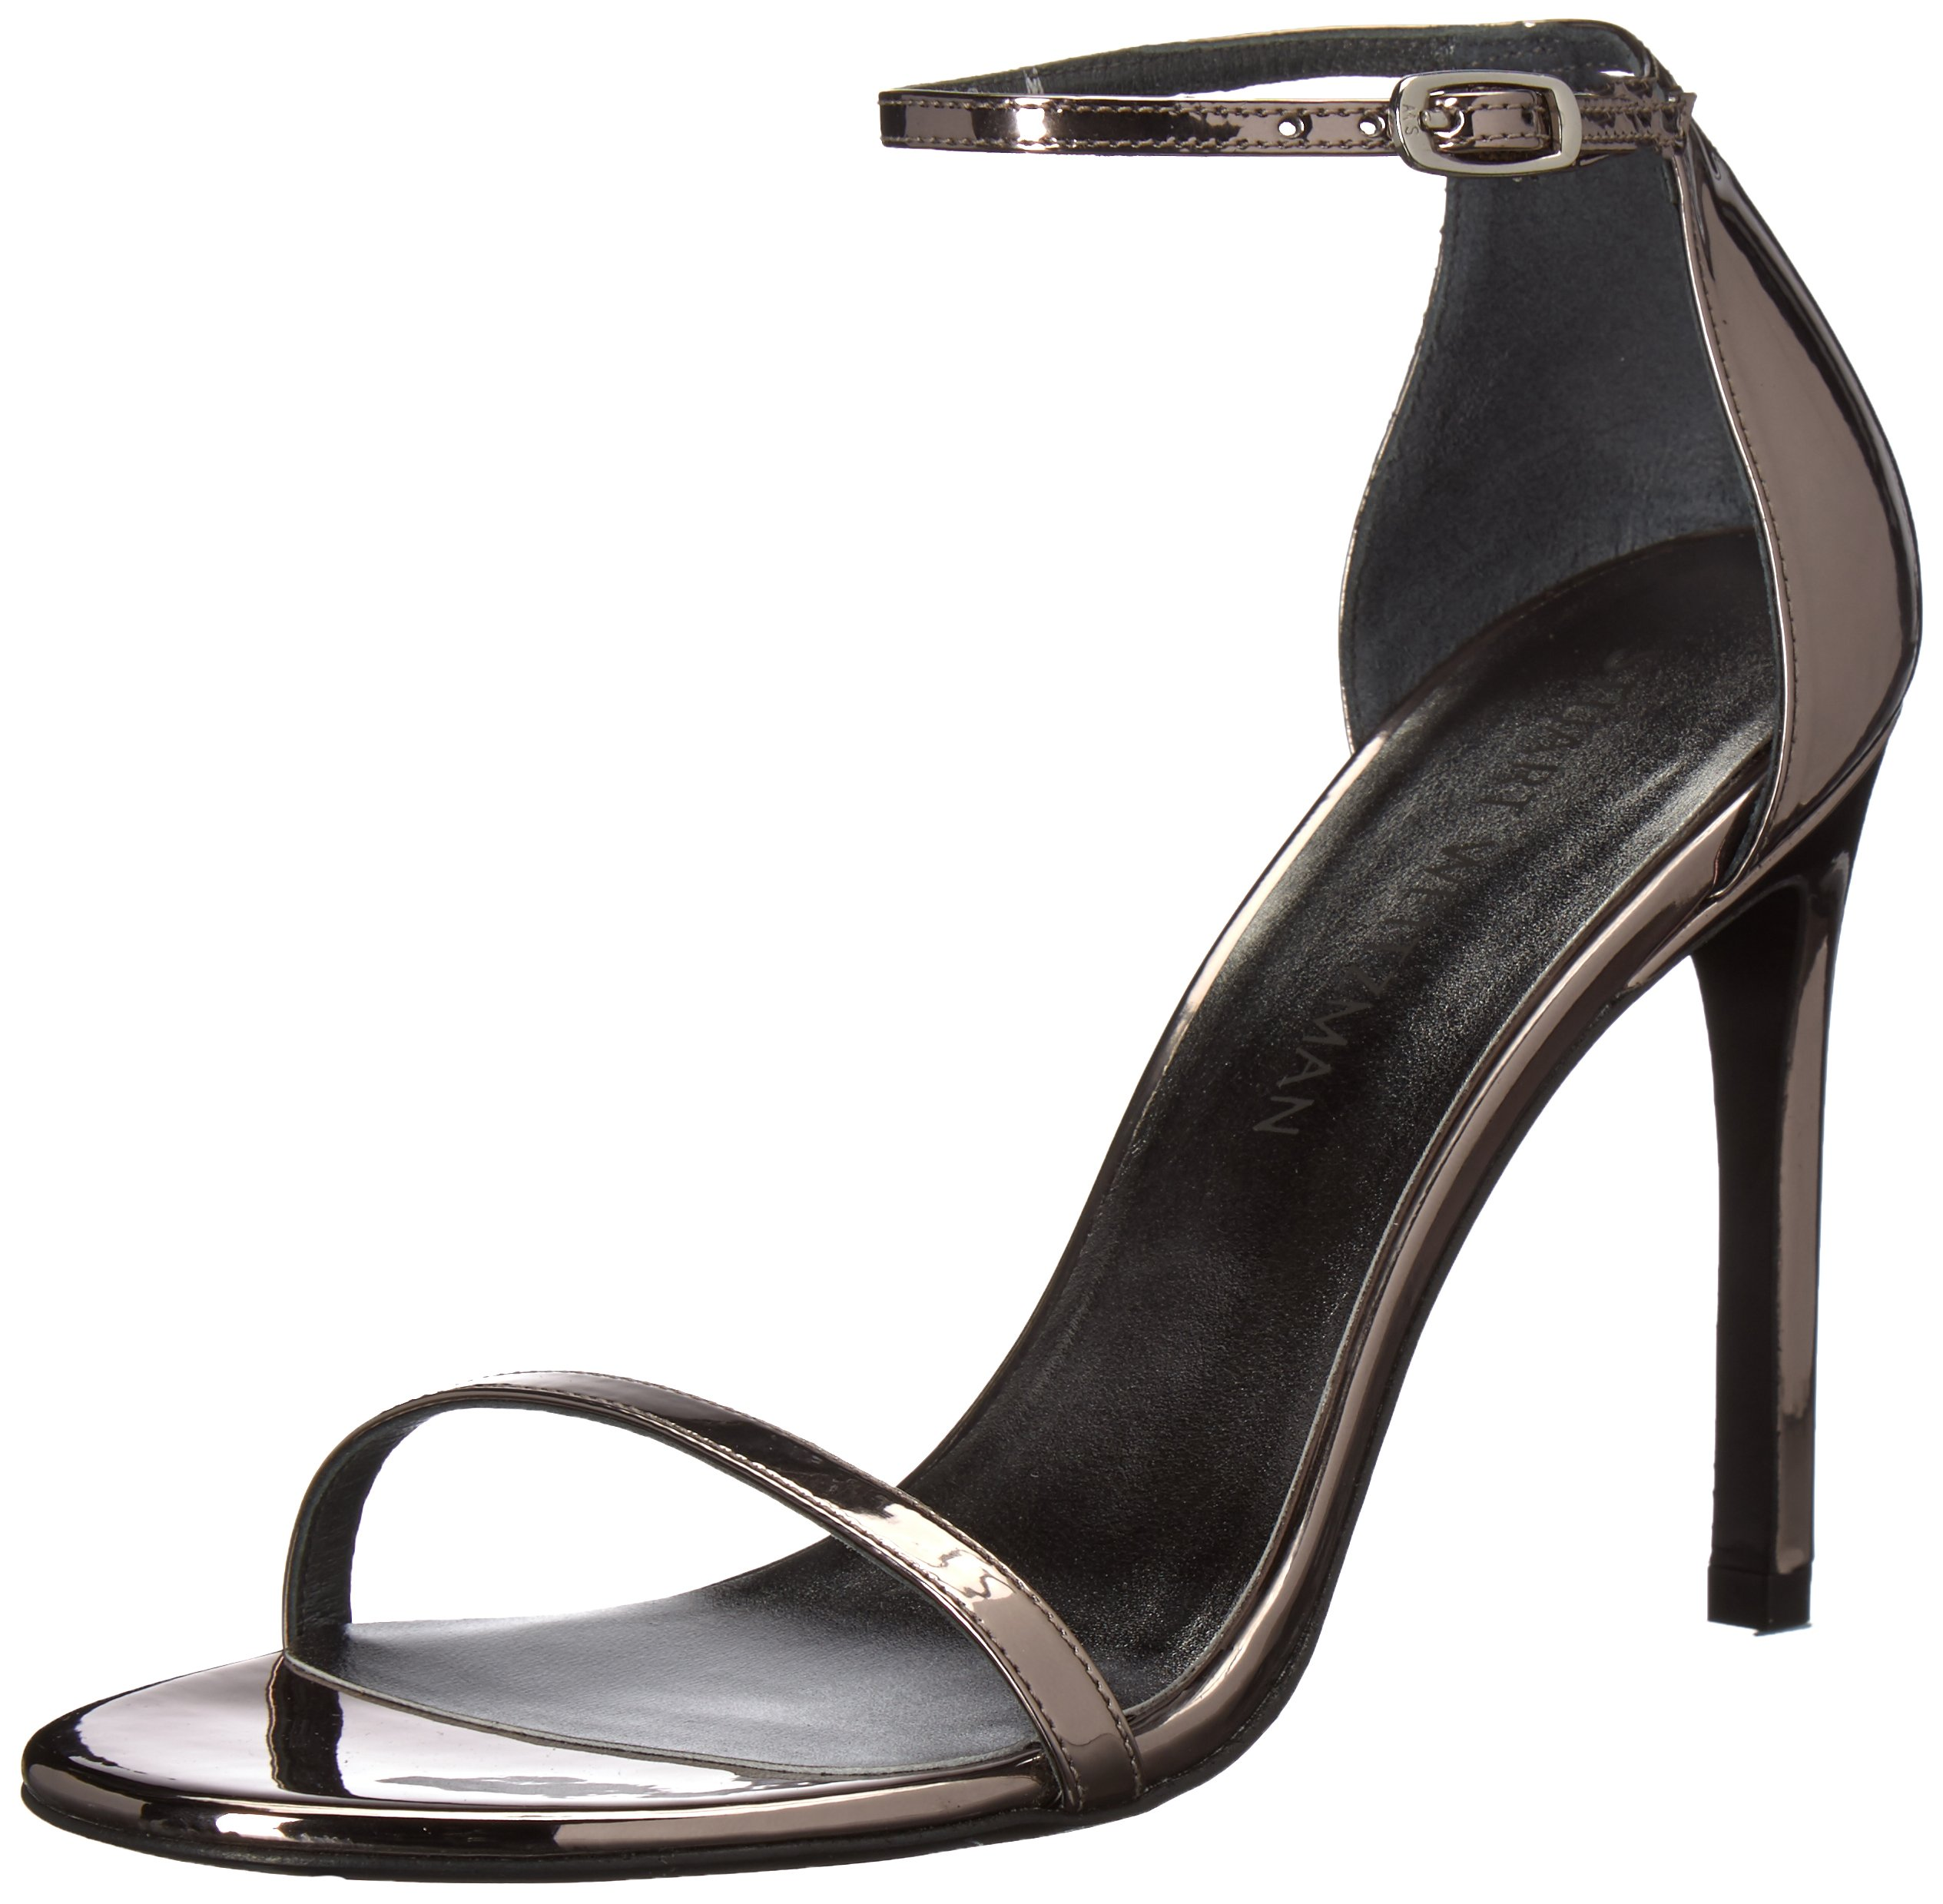 Stuart Weitzman Women's Nudistso Heeled Sandal, Pewter Glass, 5.5 Medium US by Stuart Weitzman